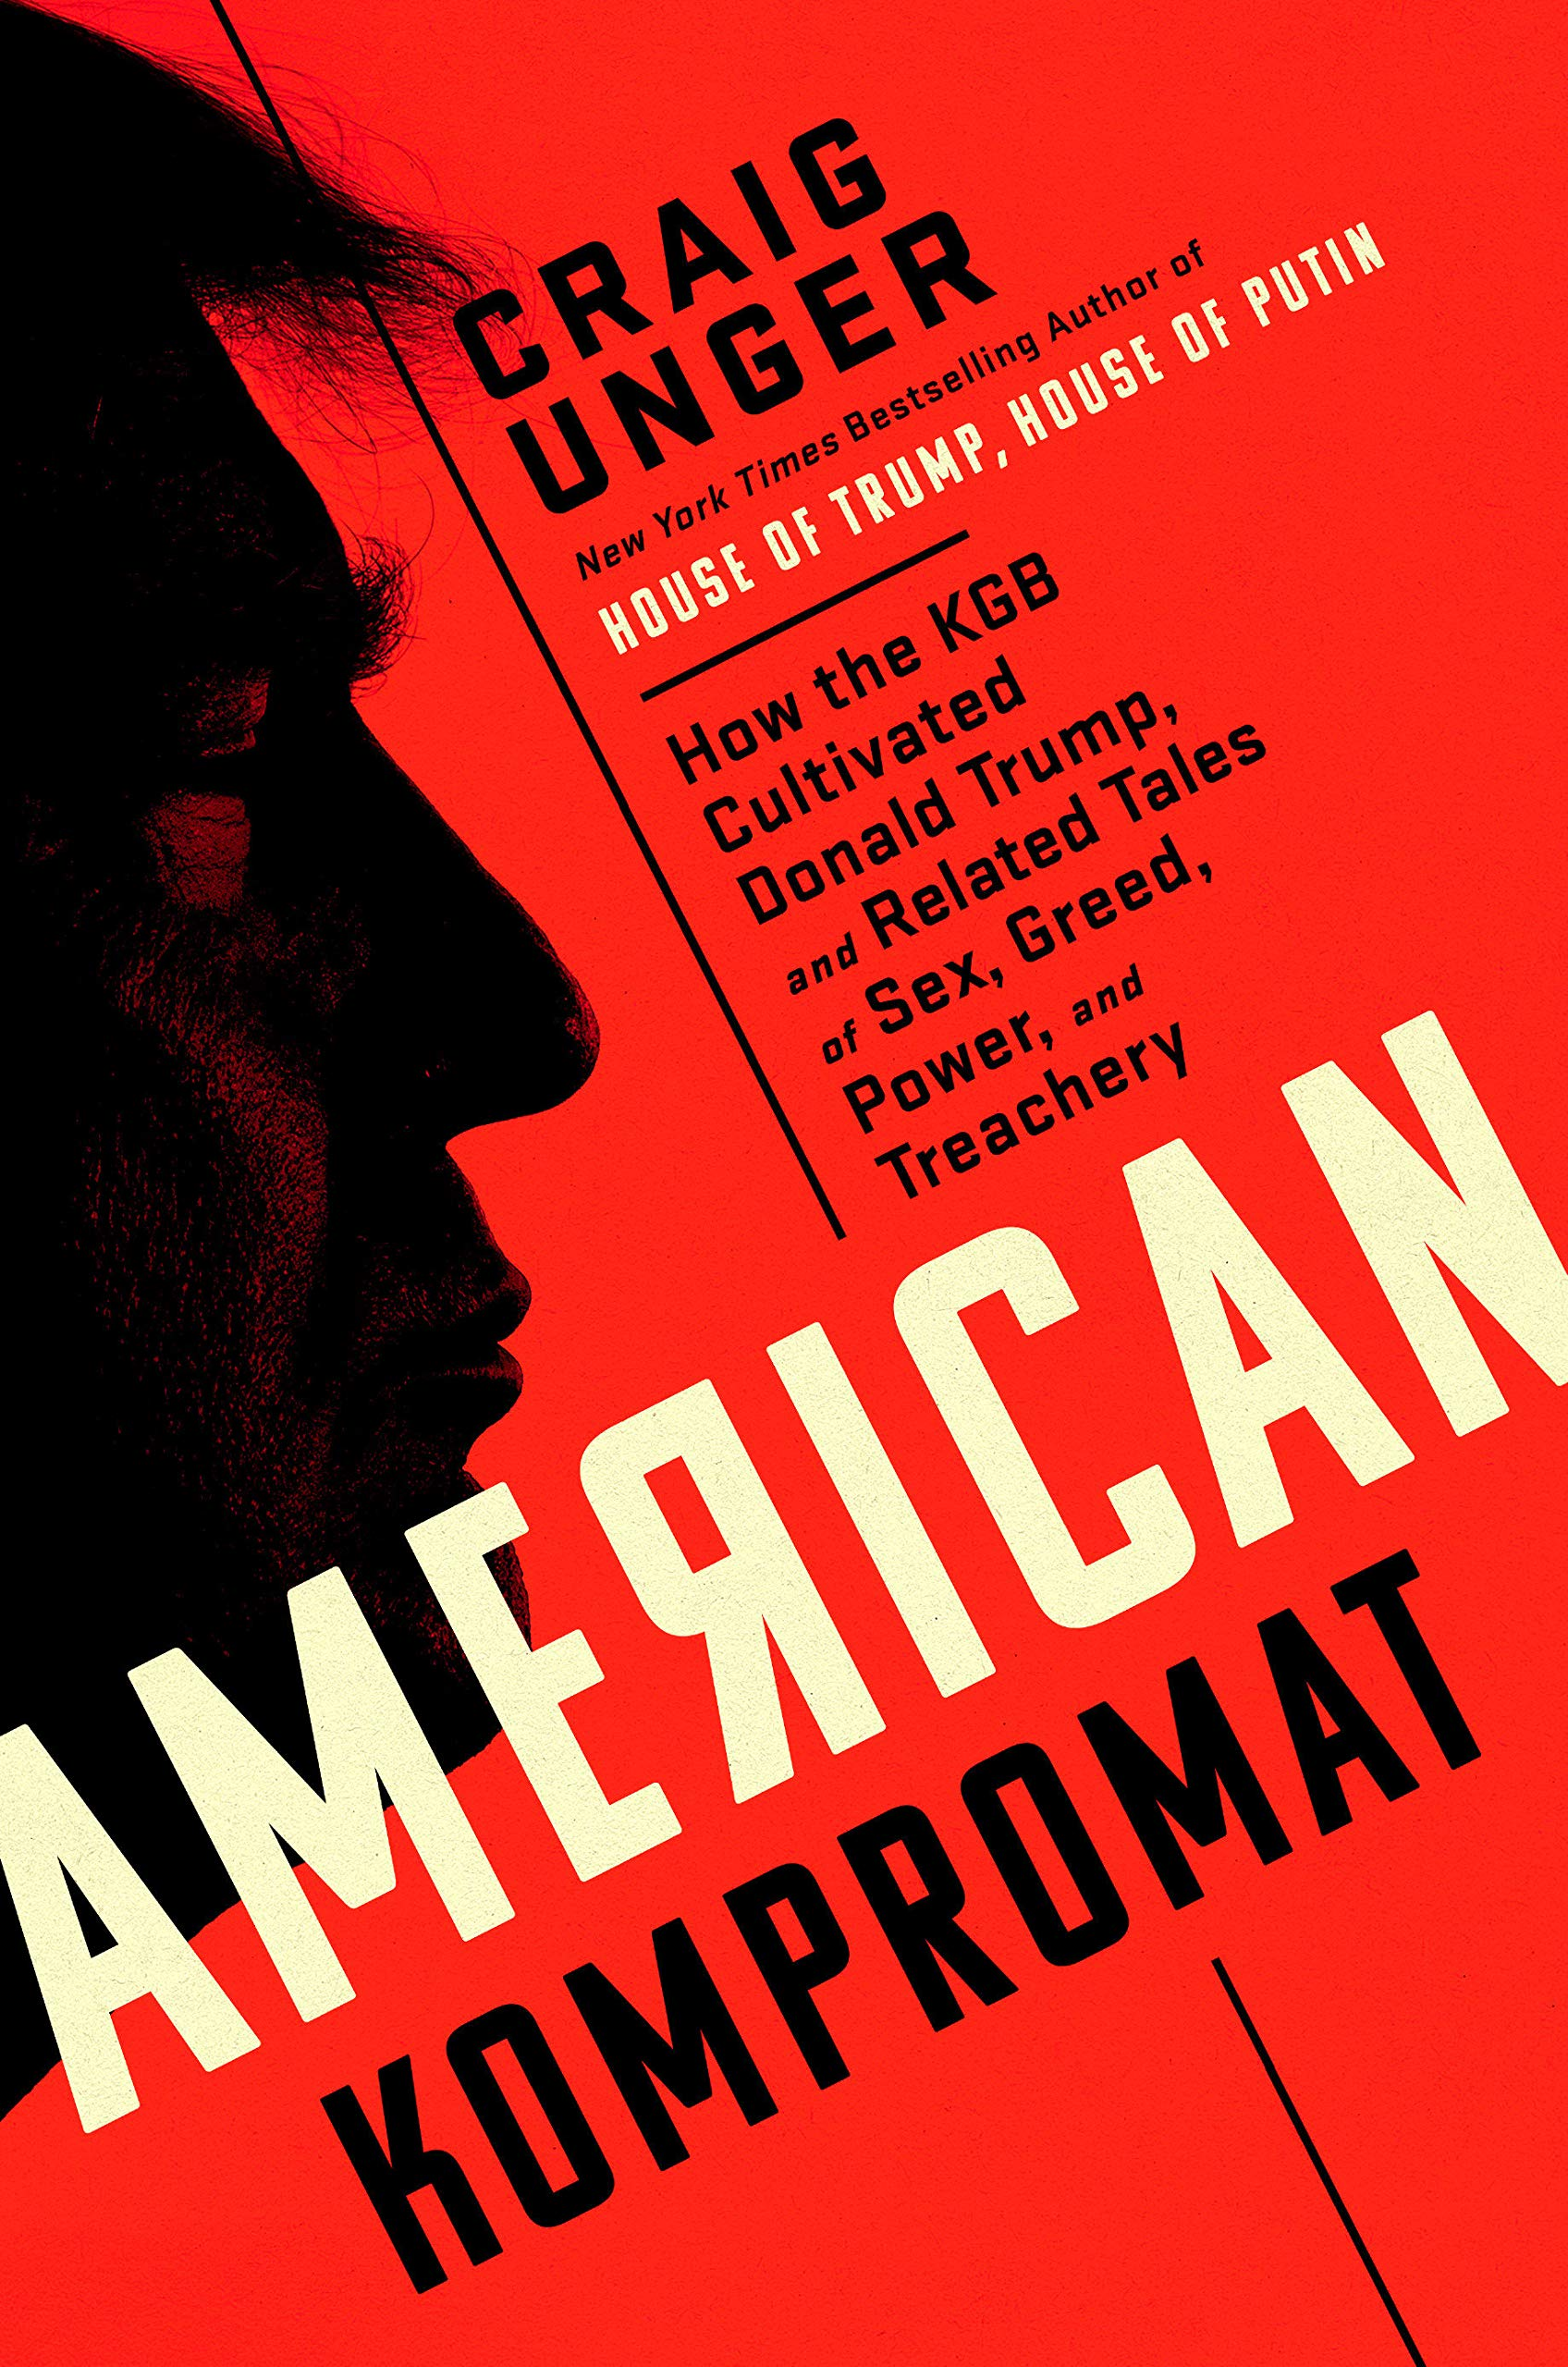 American Kompromat: How the KGB Cultivated Donald Trump, and Related Tales of Sex, Greed, Power, and Treachery WeeklyReviewer